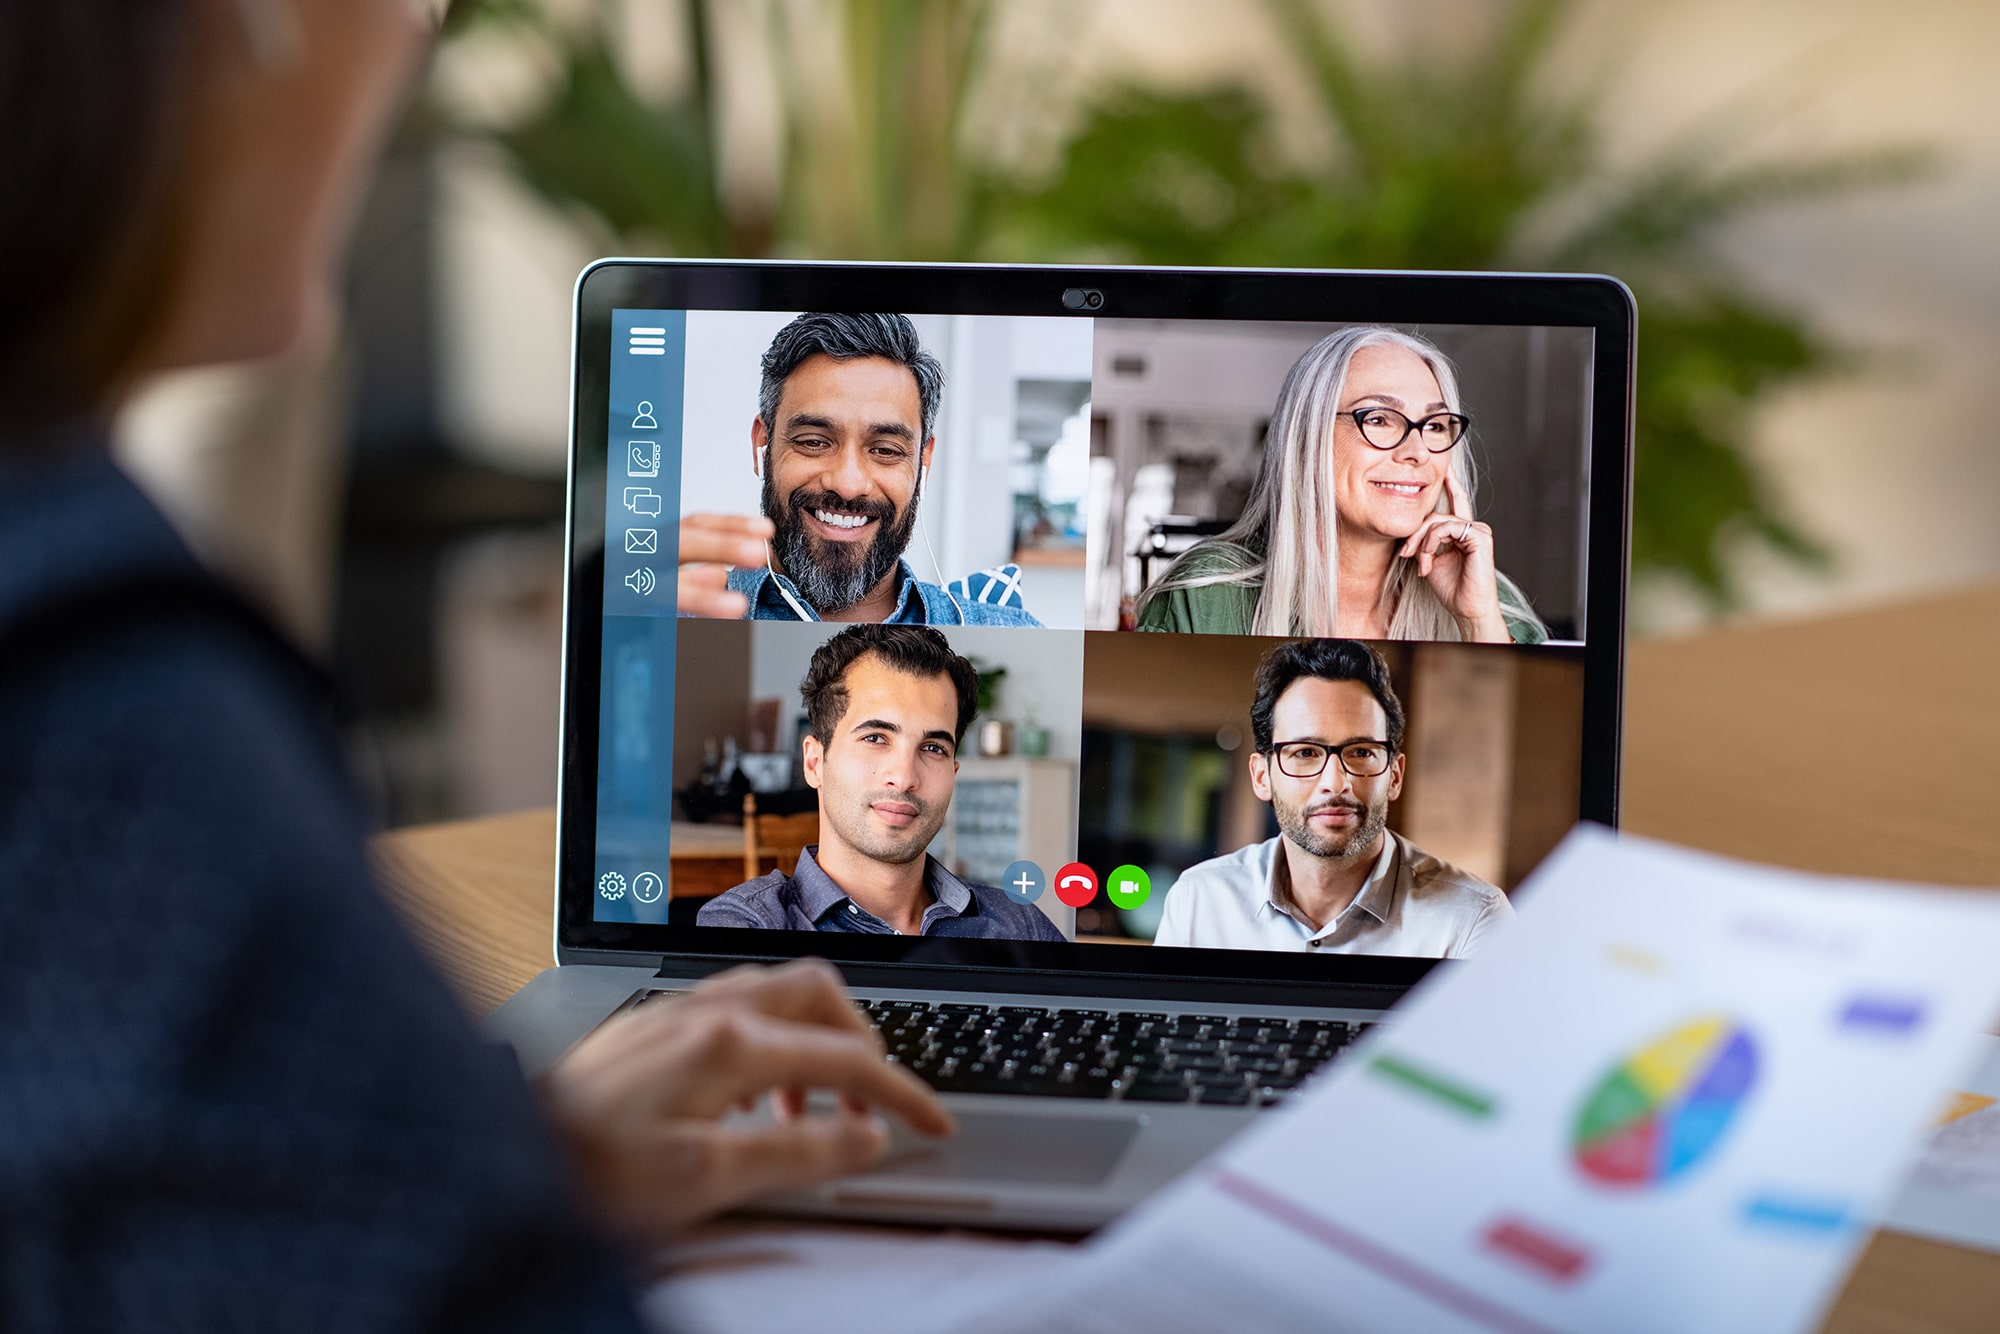 Executing Diversity and Inclusion Strategies When Working Remote